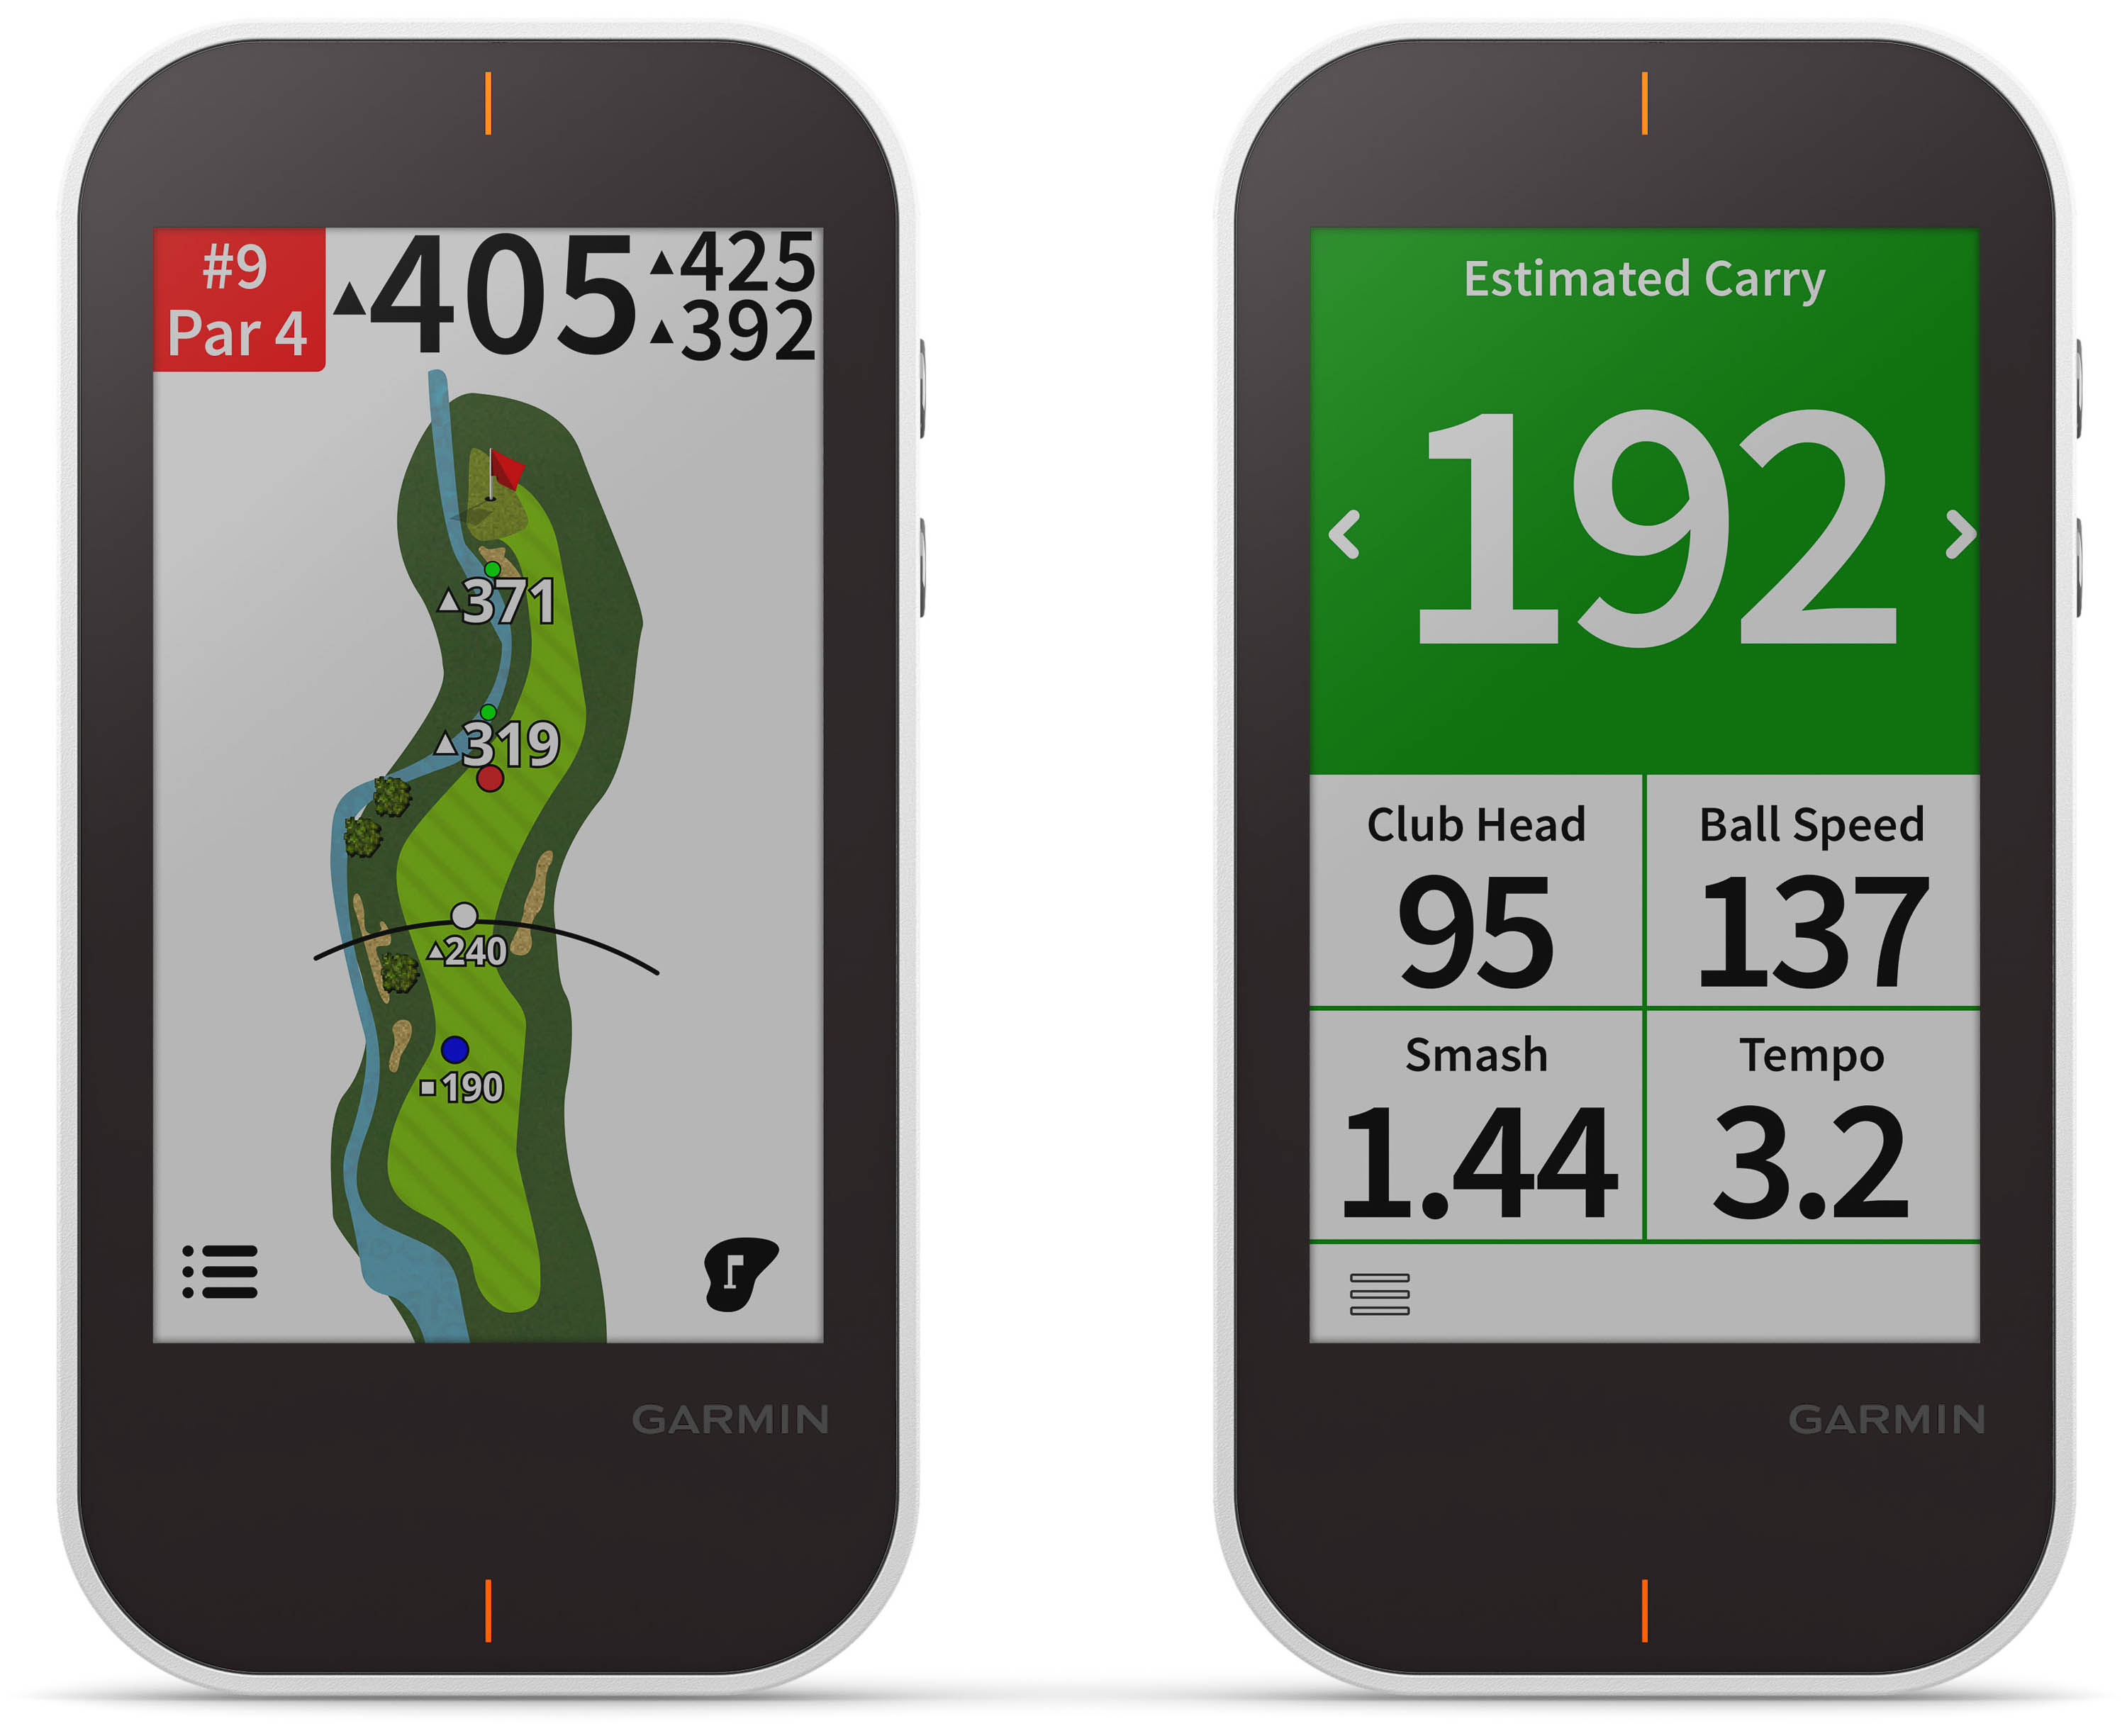 Golf Entfernungsmesser Iphone App : Garmin approach g gps launch monitor